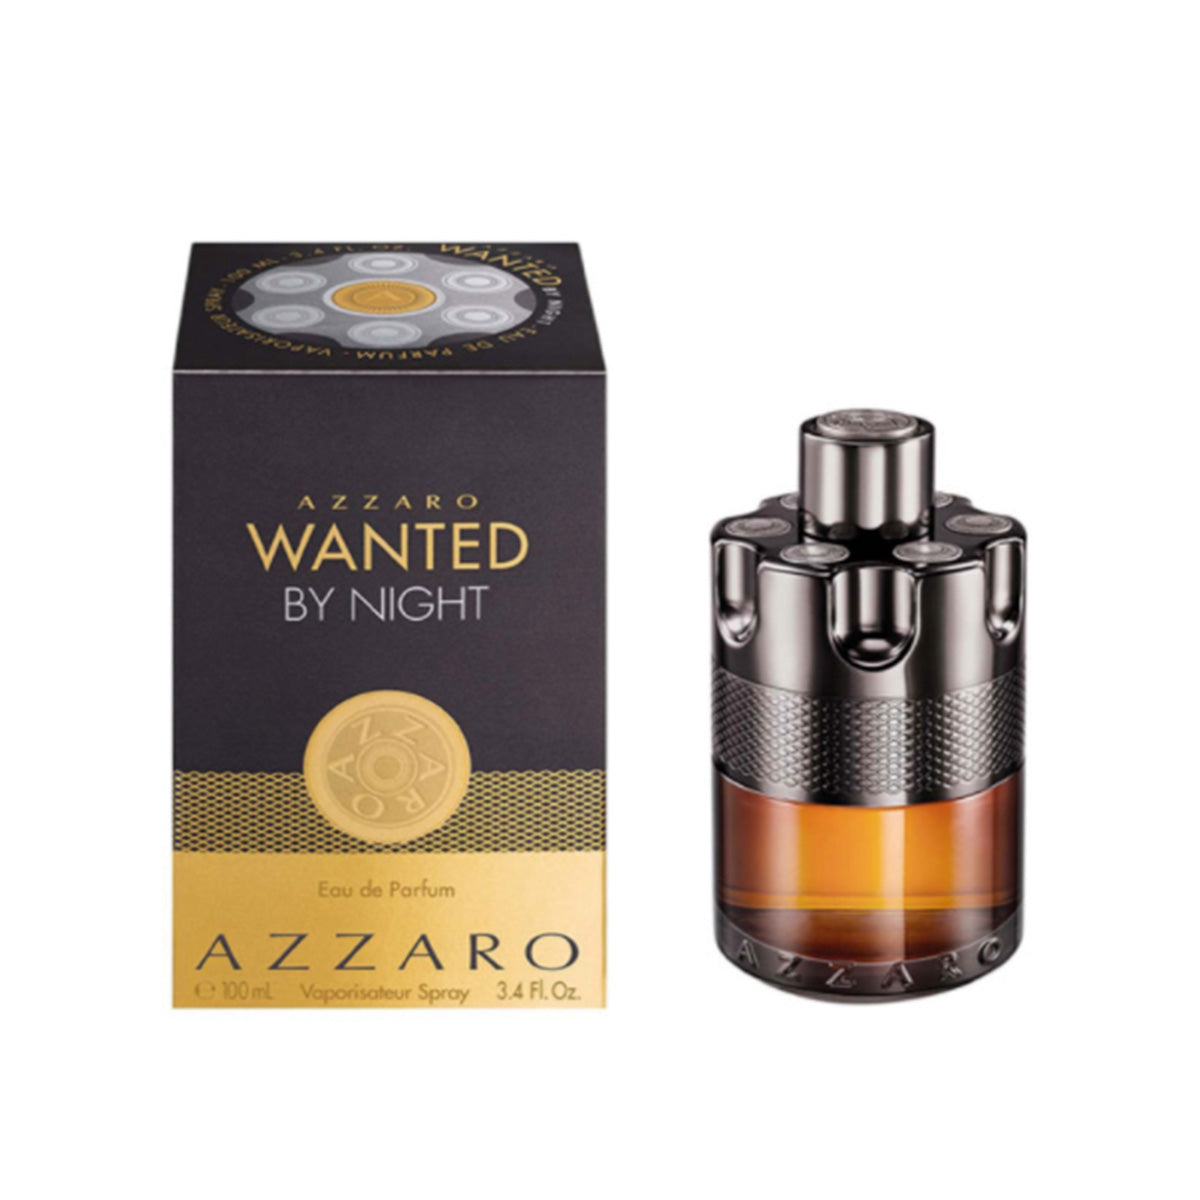 PERFUME AZZARO WANTED BY NIGHT 100 ML